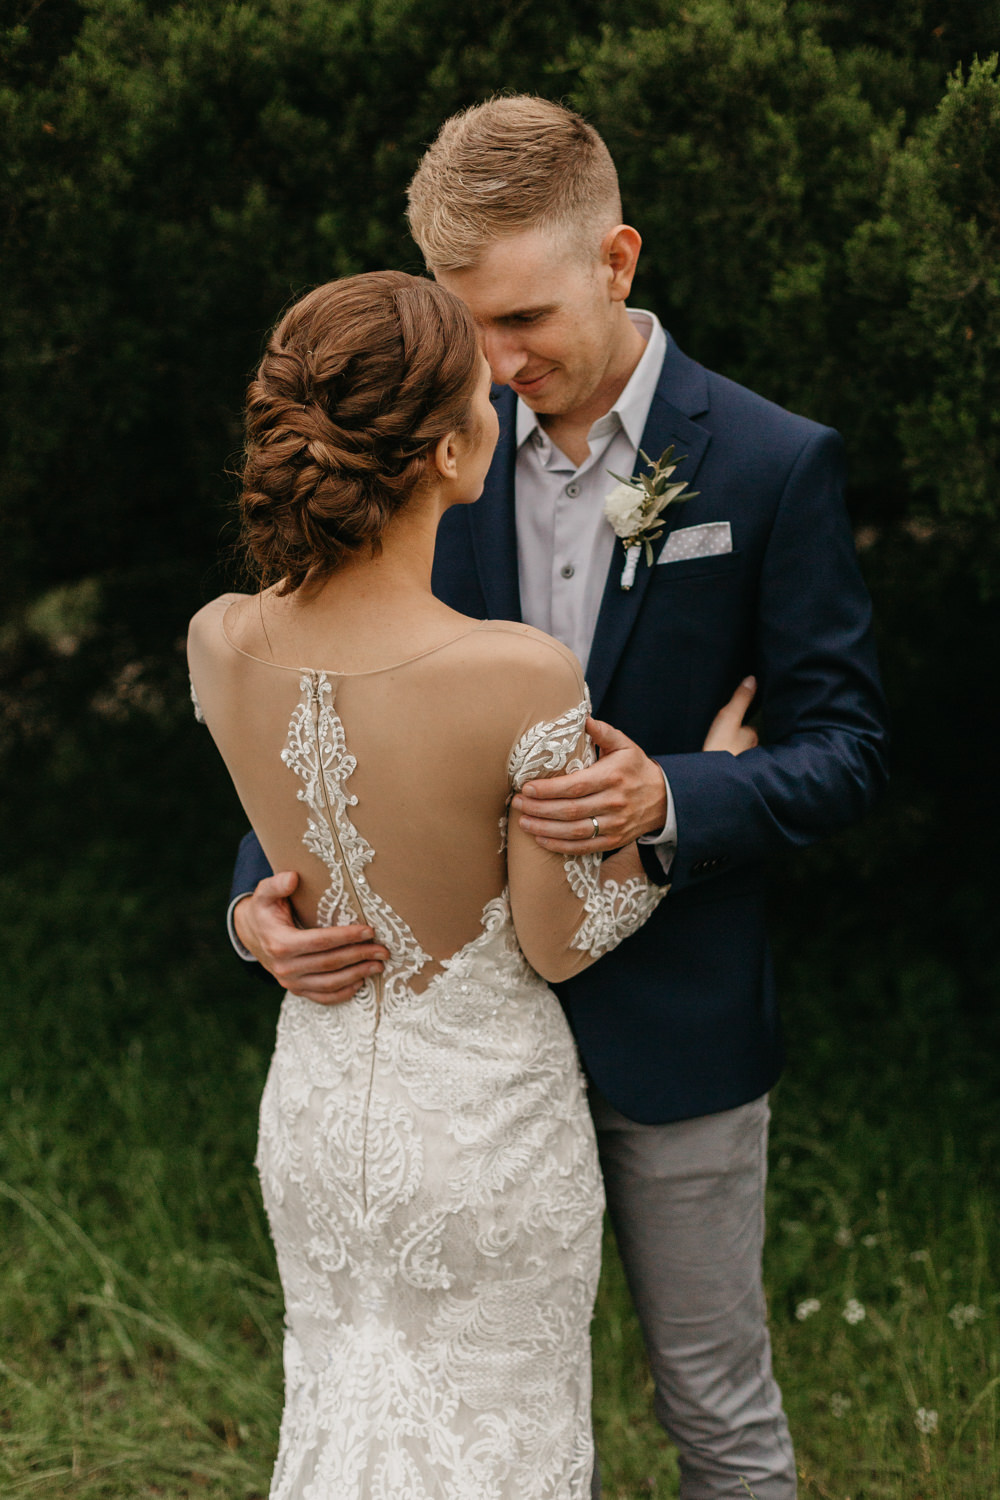 HaileyDylan_Austin Elopement Photographer Austin Wedding Photographer-153.jpg